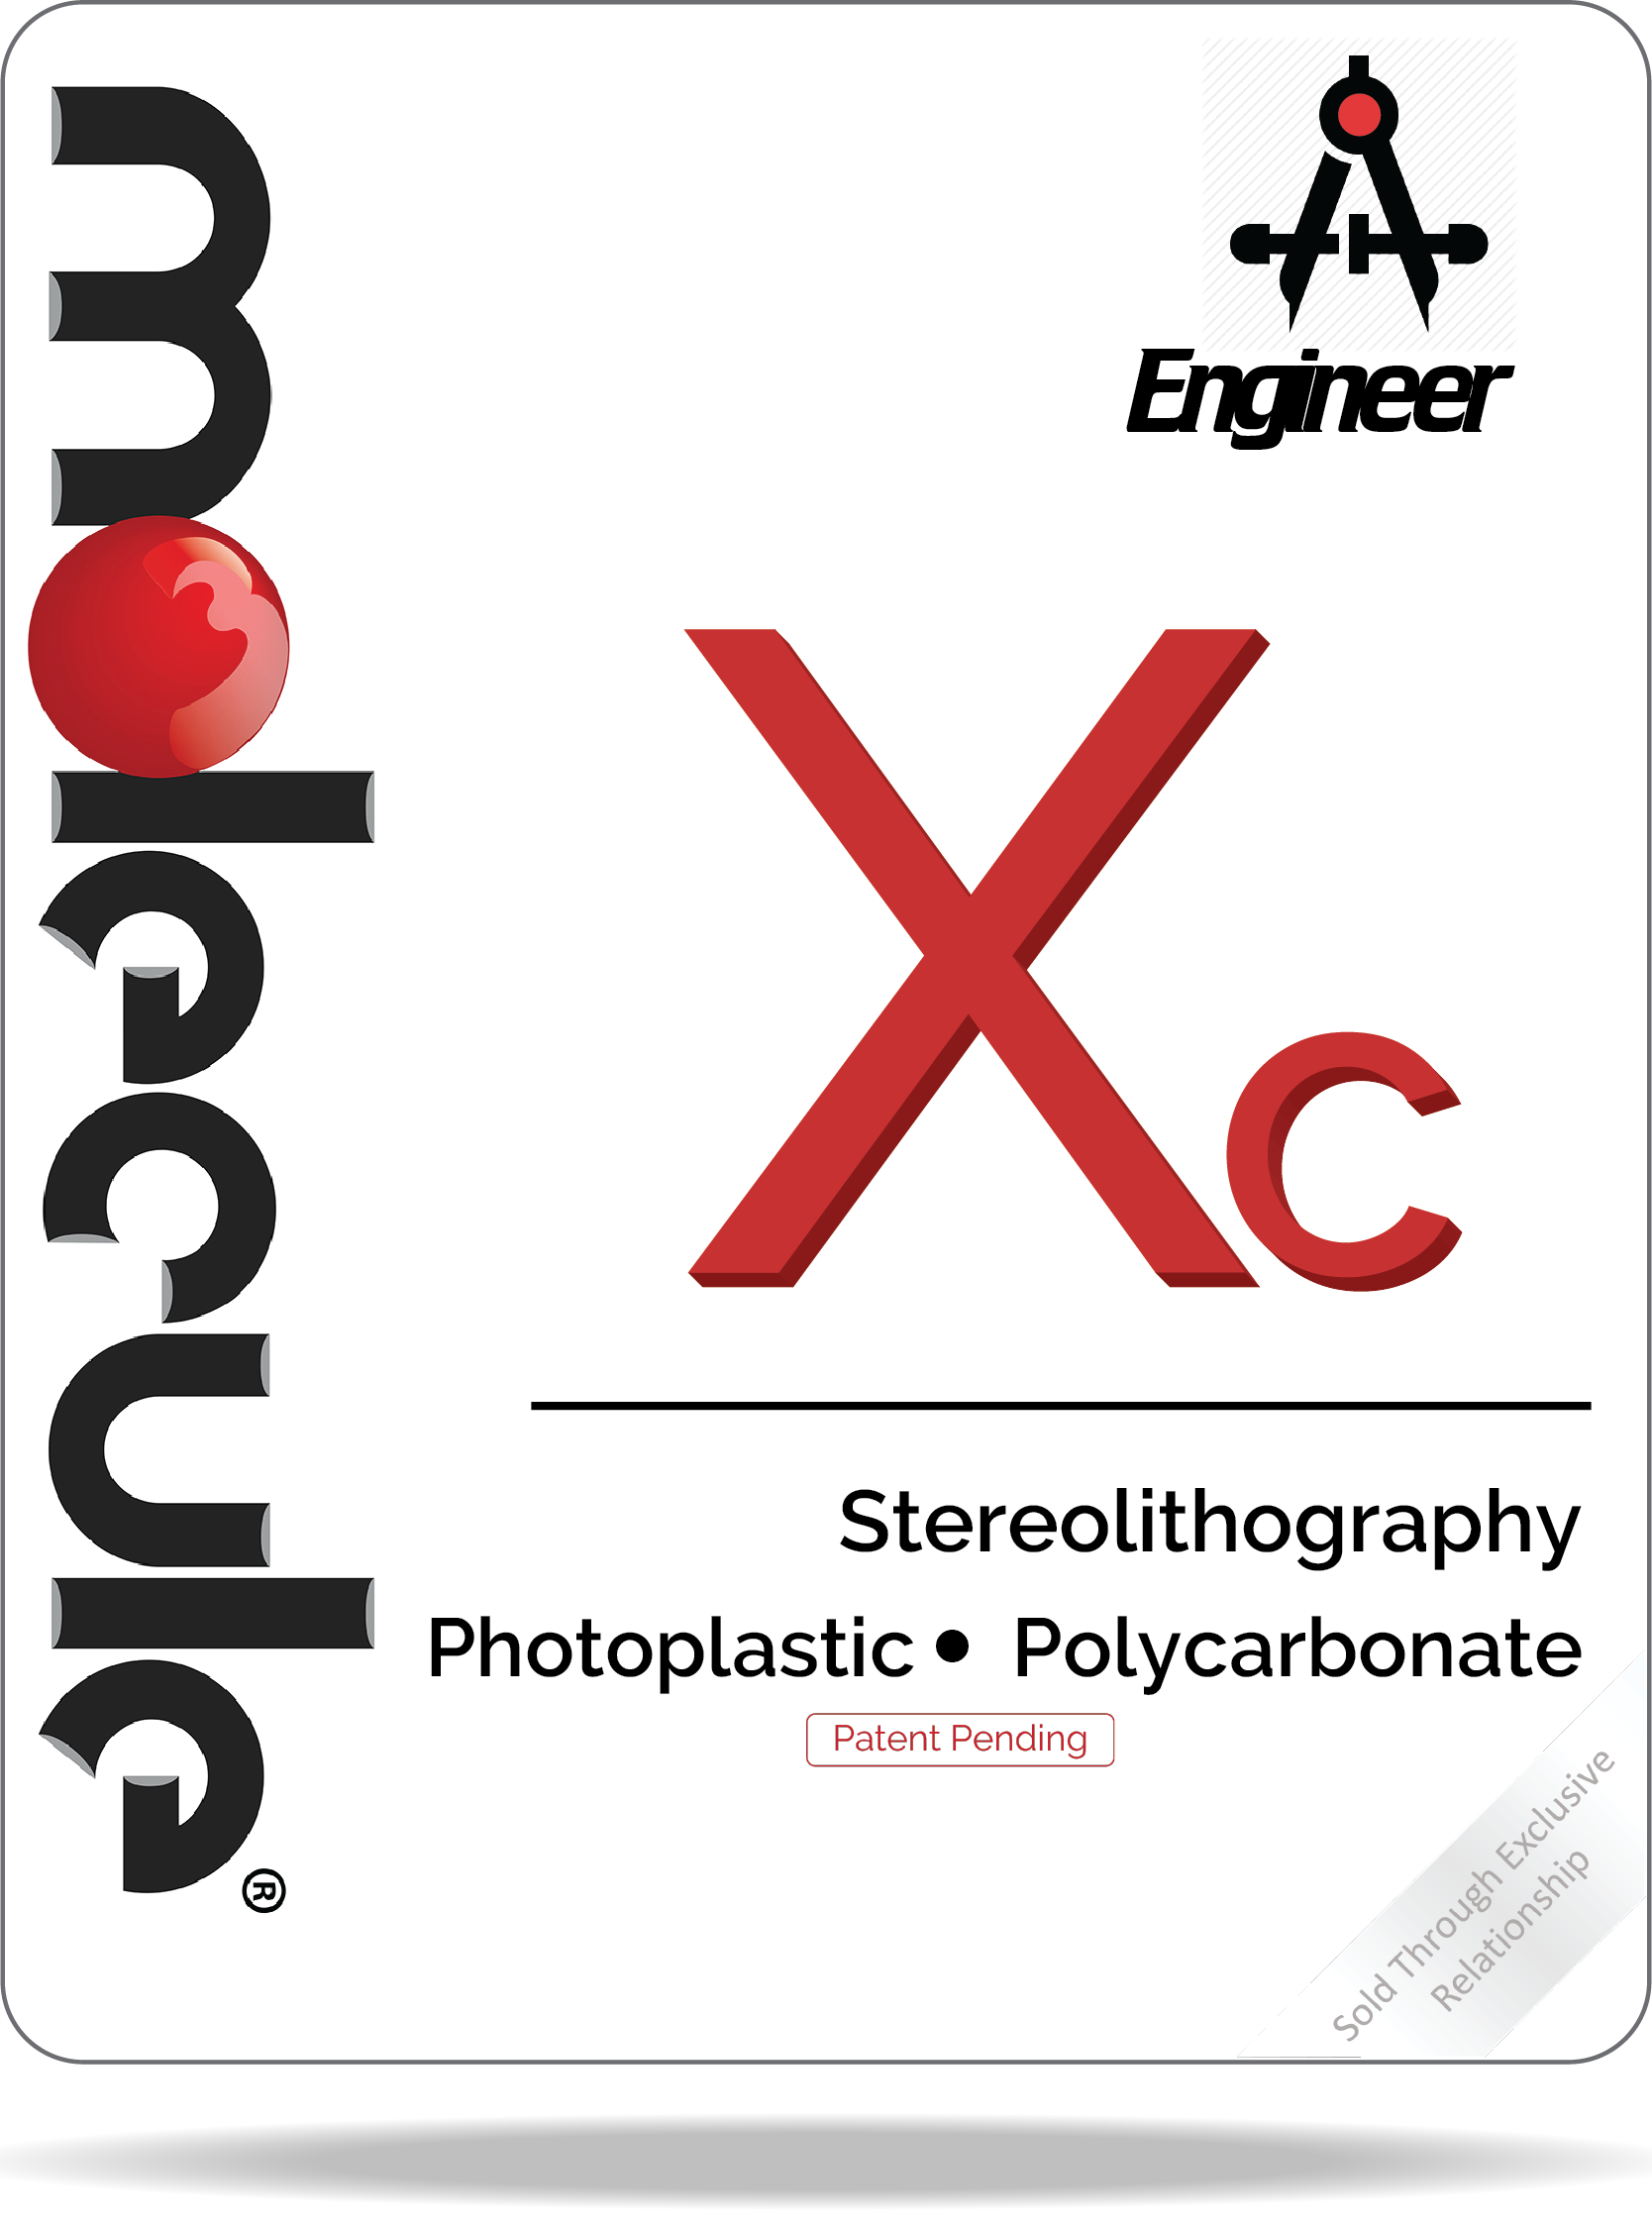 Xc Photoplastic Polycarbonate